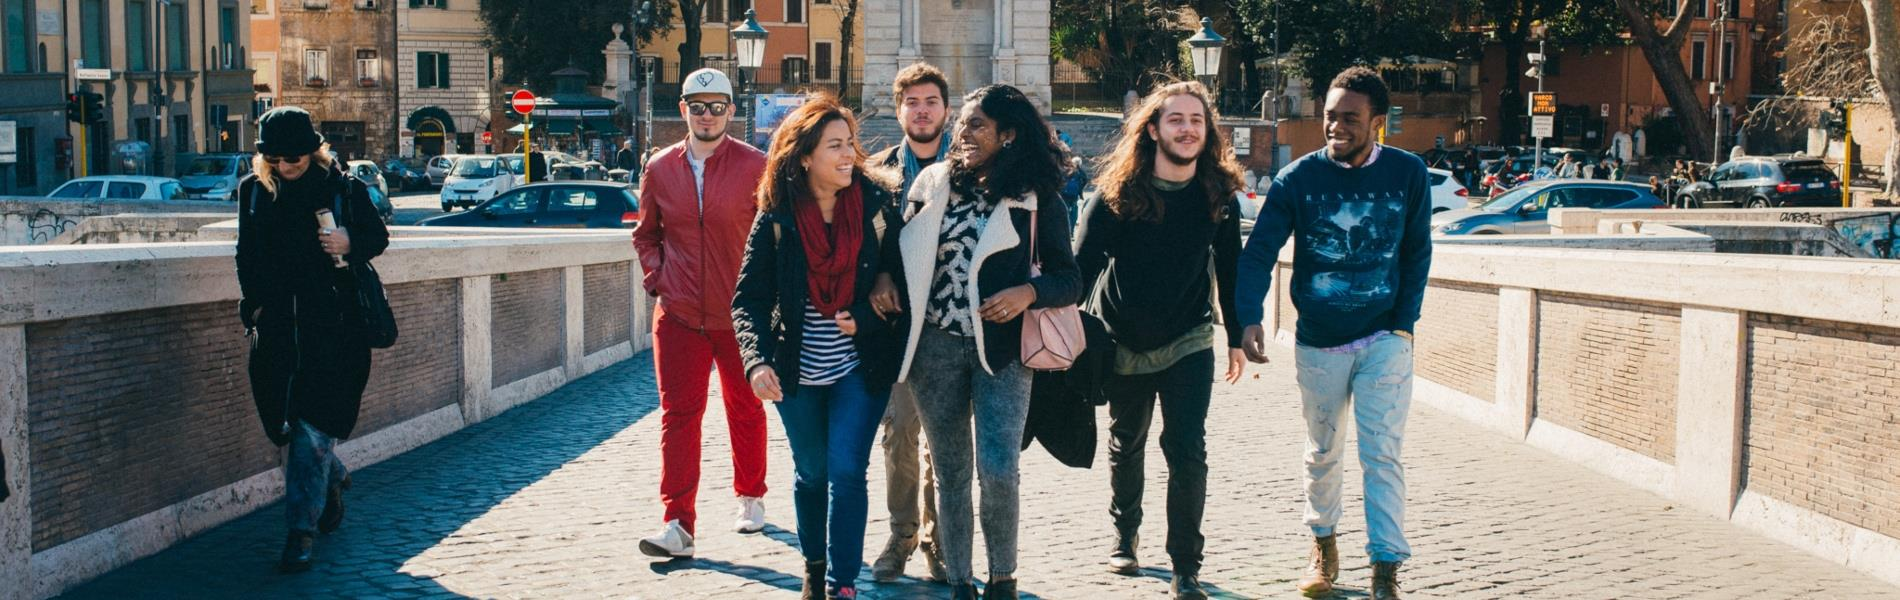 Study Abroad at John Cabot University in Rome, Italy